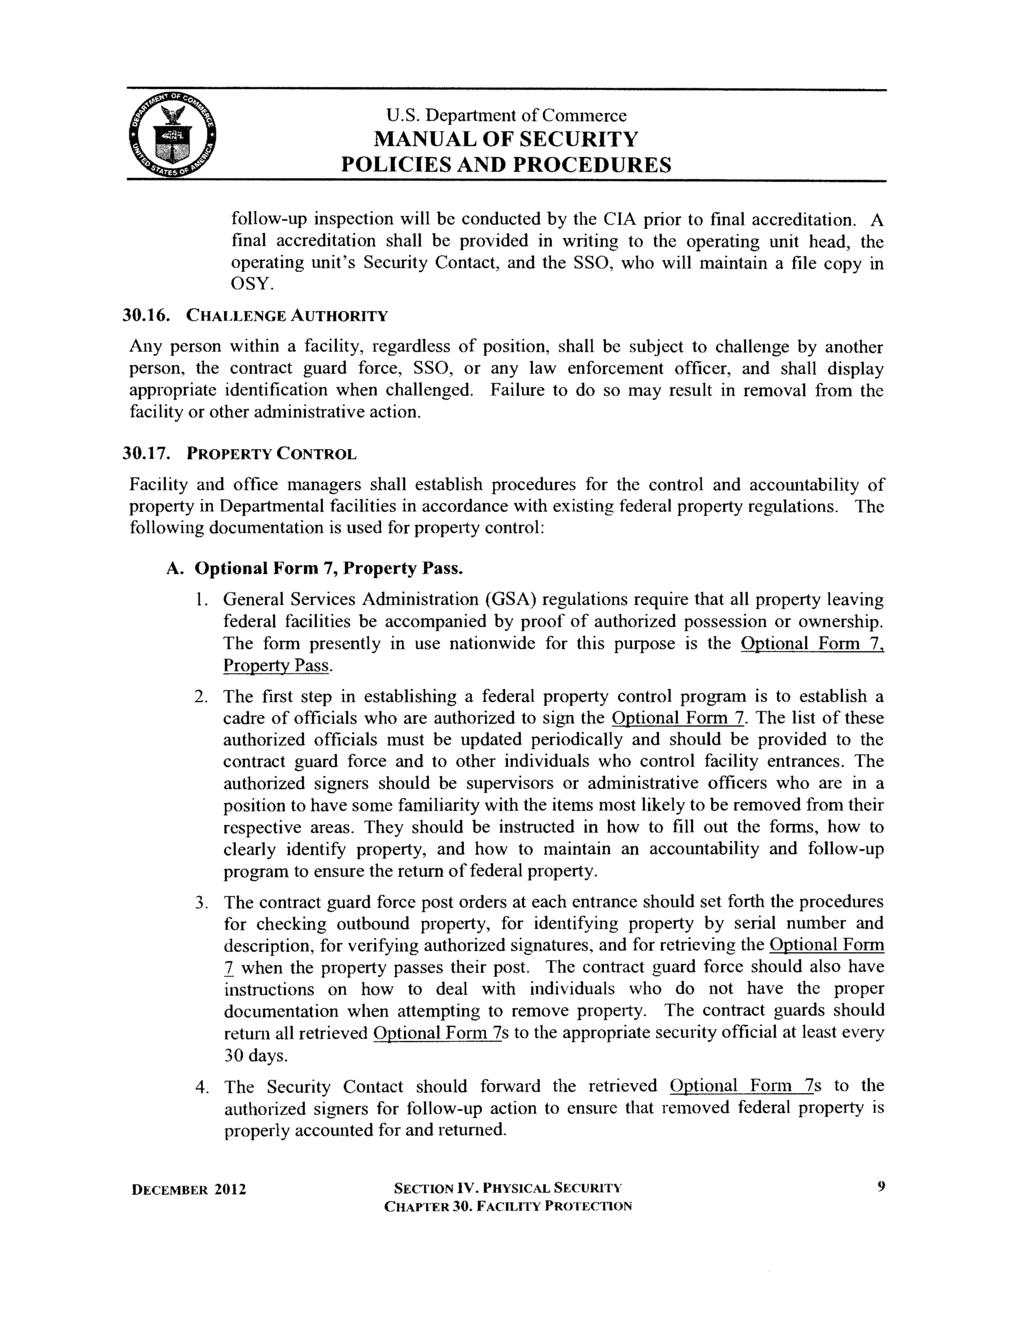 Letter Of Medical Necessity Fsa Template - Department Of Merce Manual Of Security Policies and Procedures Pdf